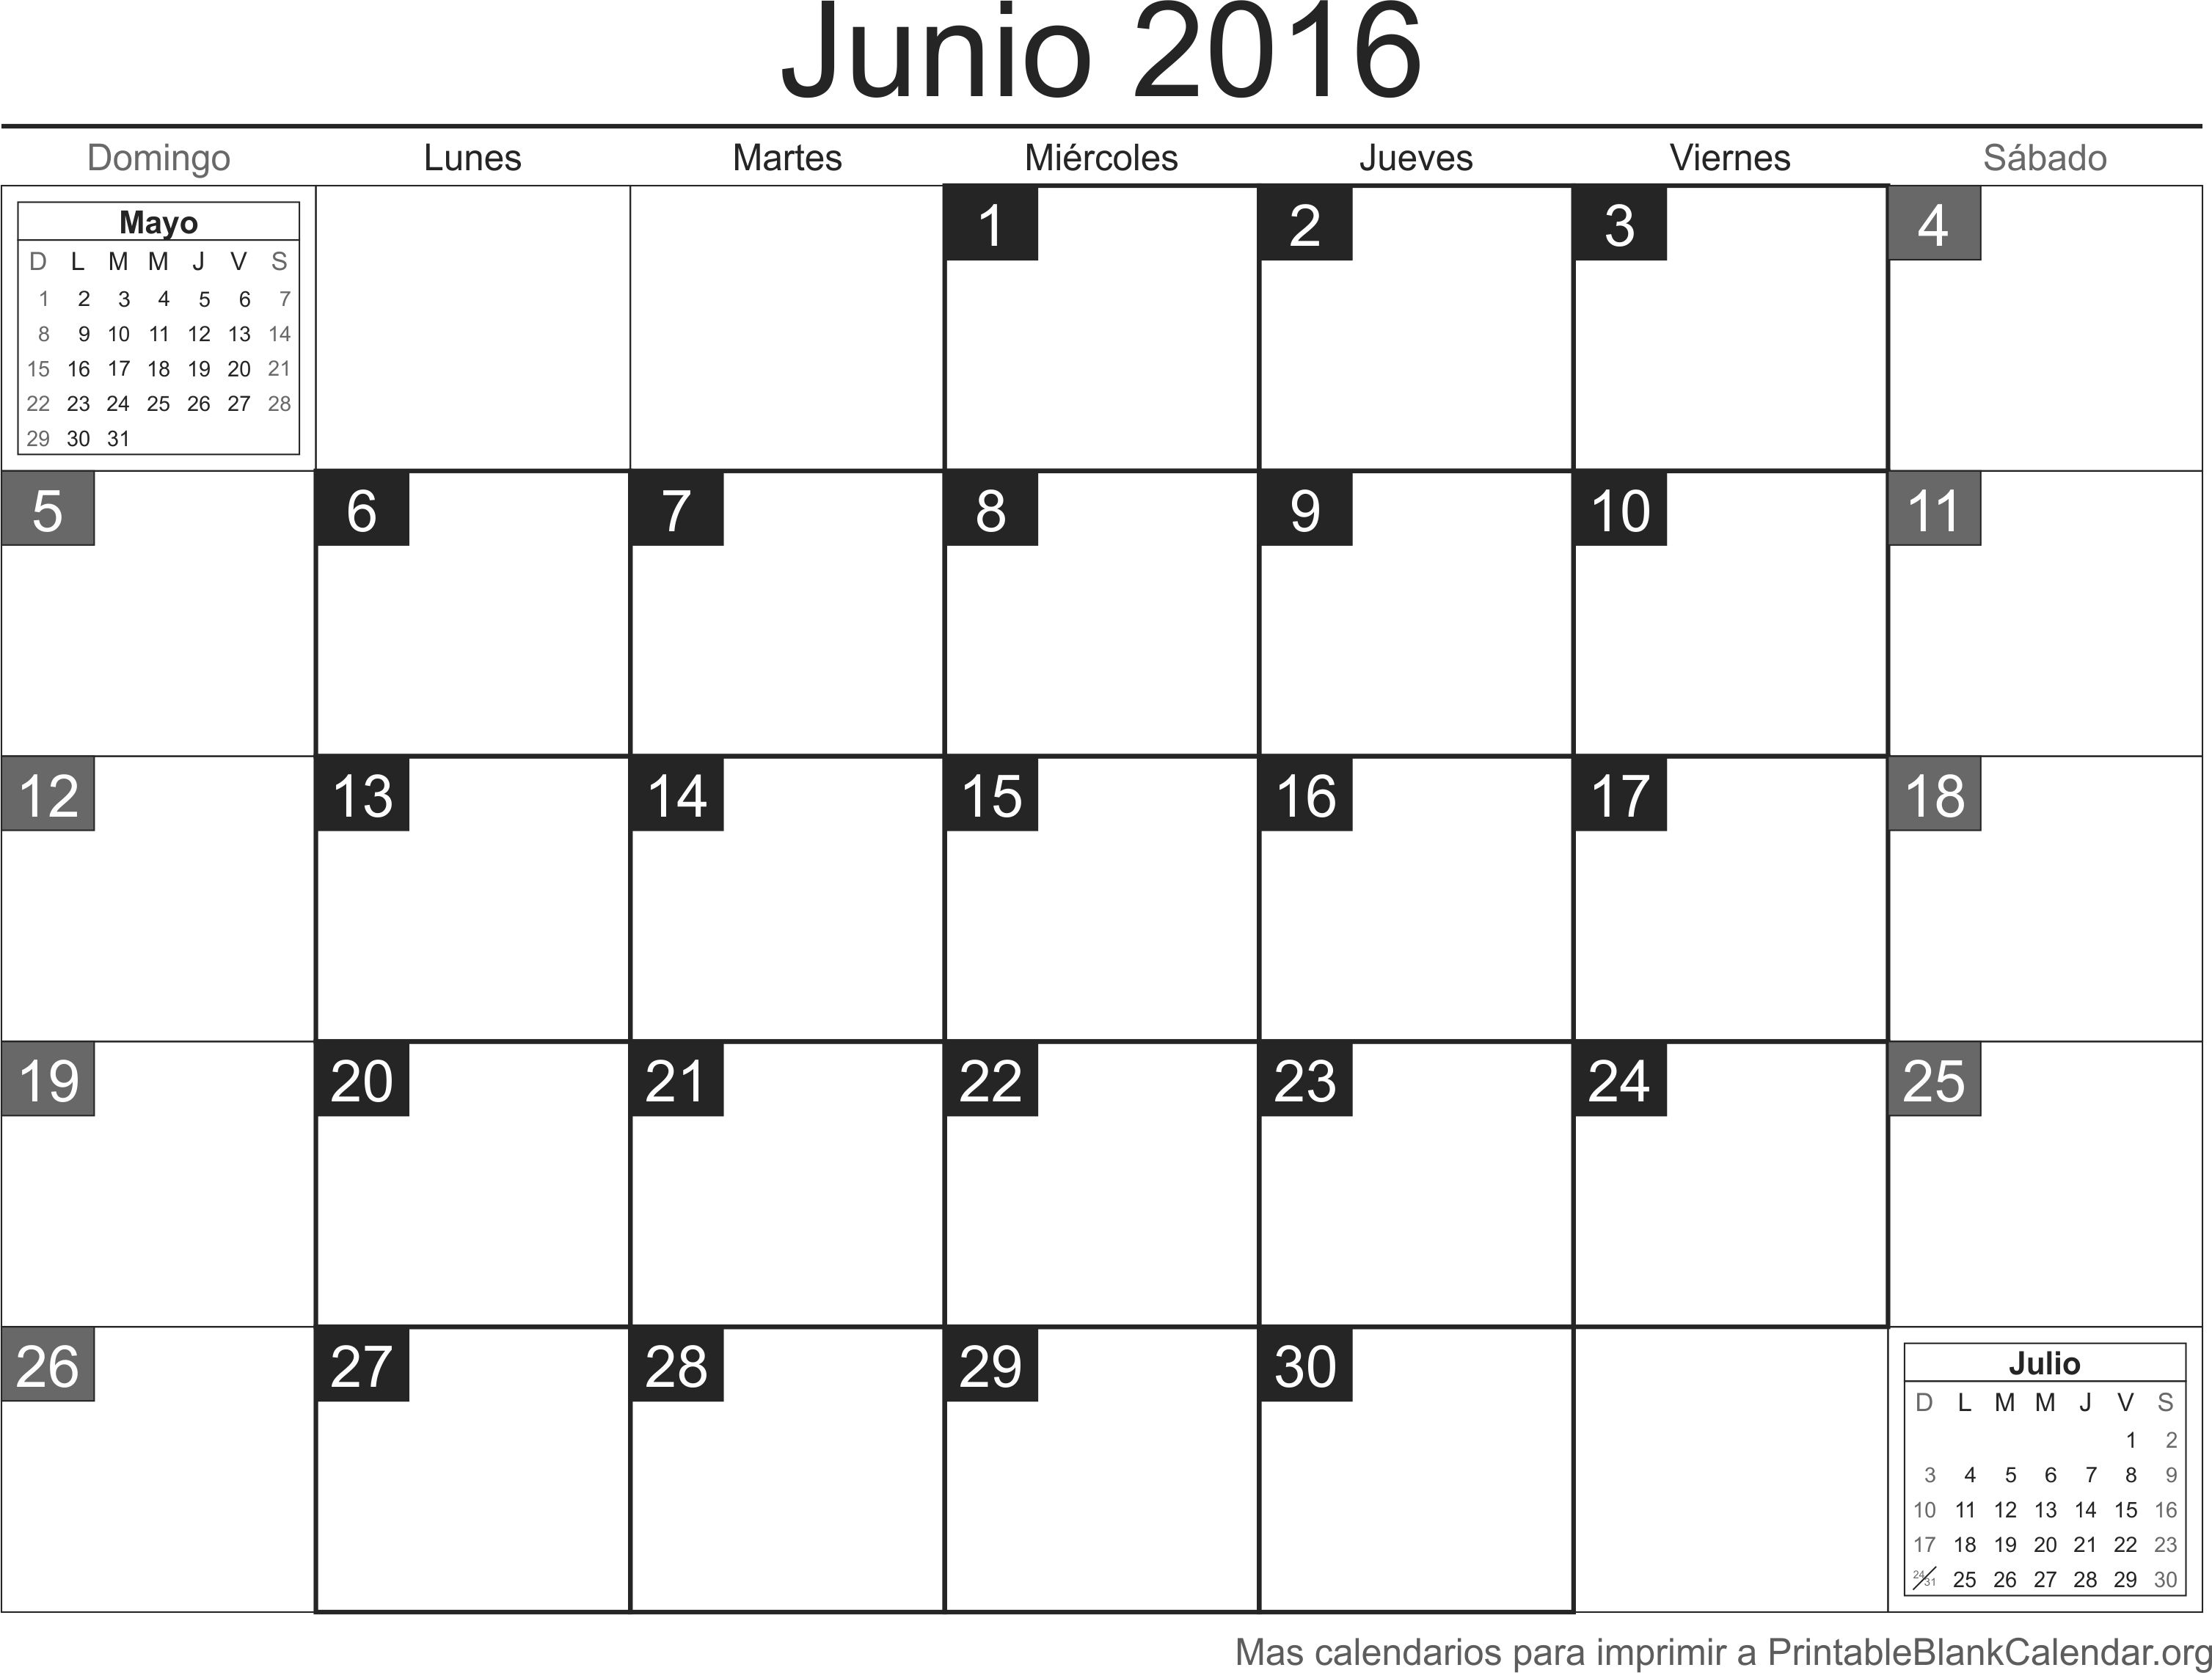 calendario junio 2016 para imprimir calendarios para On calendario junio 2016 para imprimir